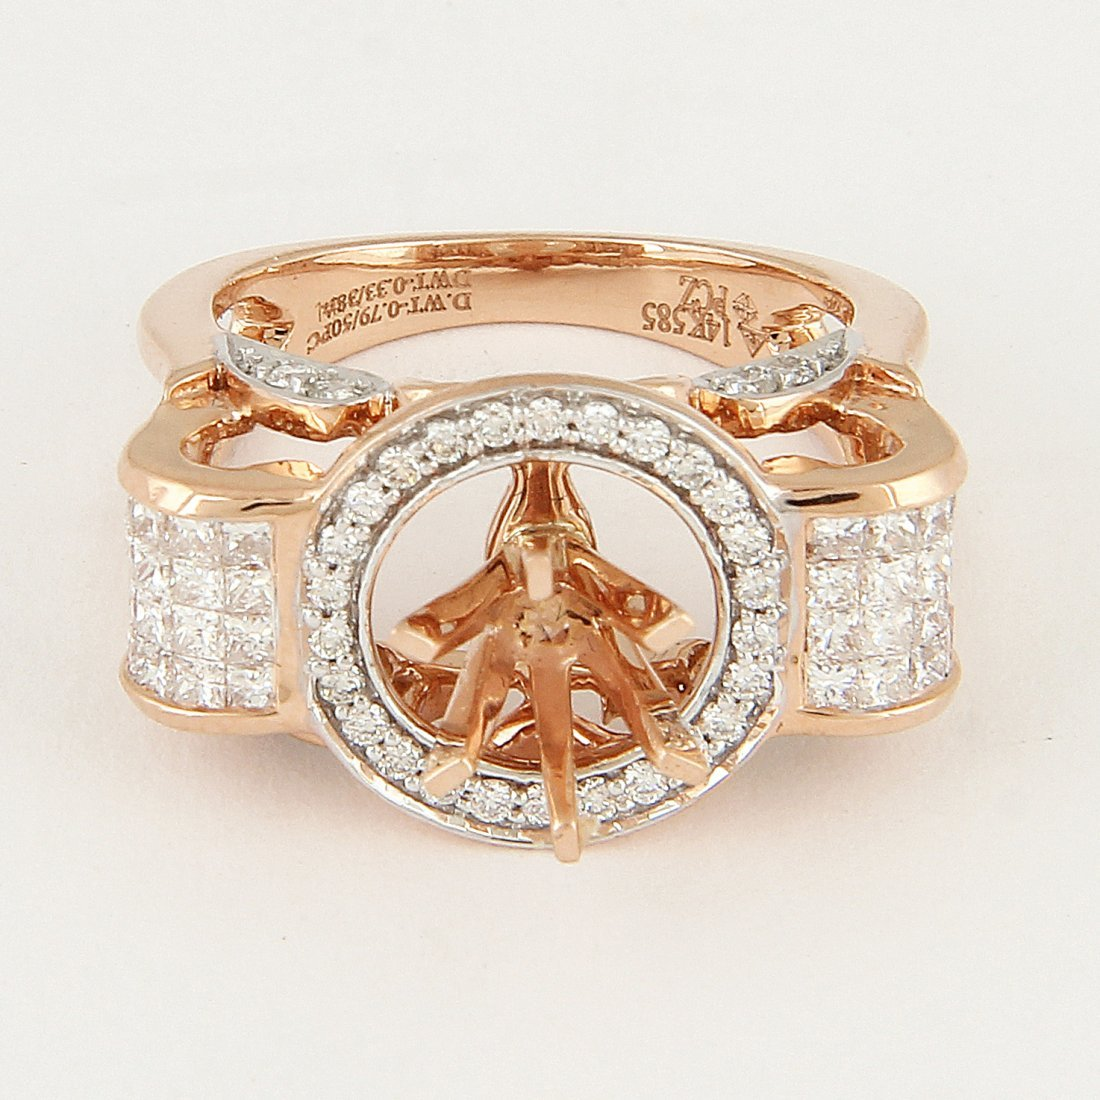 14 K Rose Gold Diamond Ring - Center stone unmounted